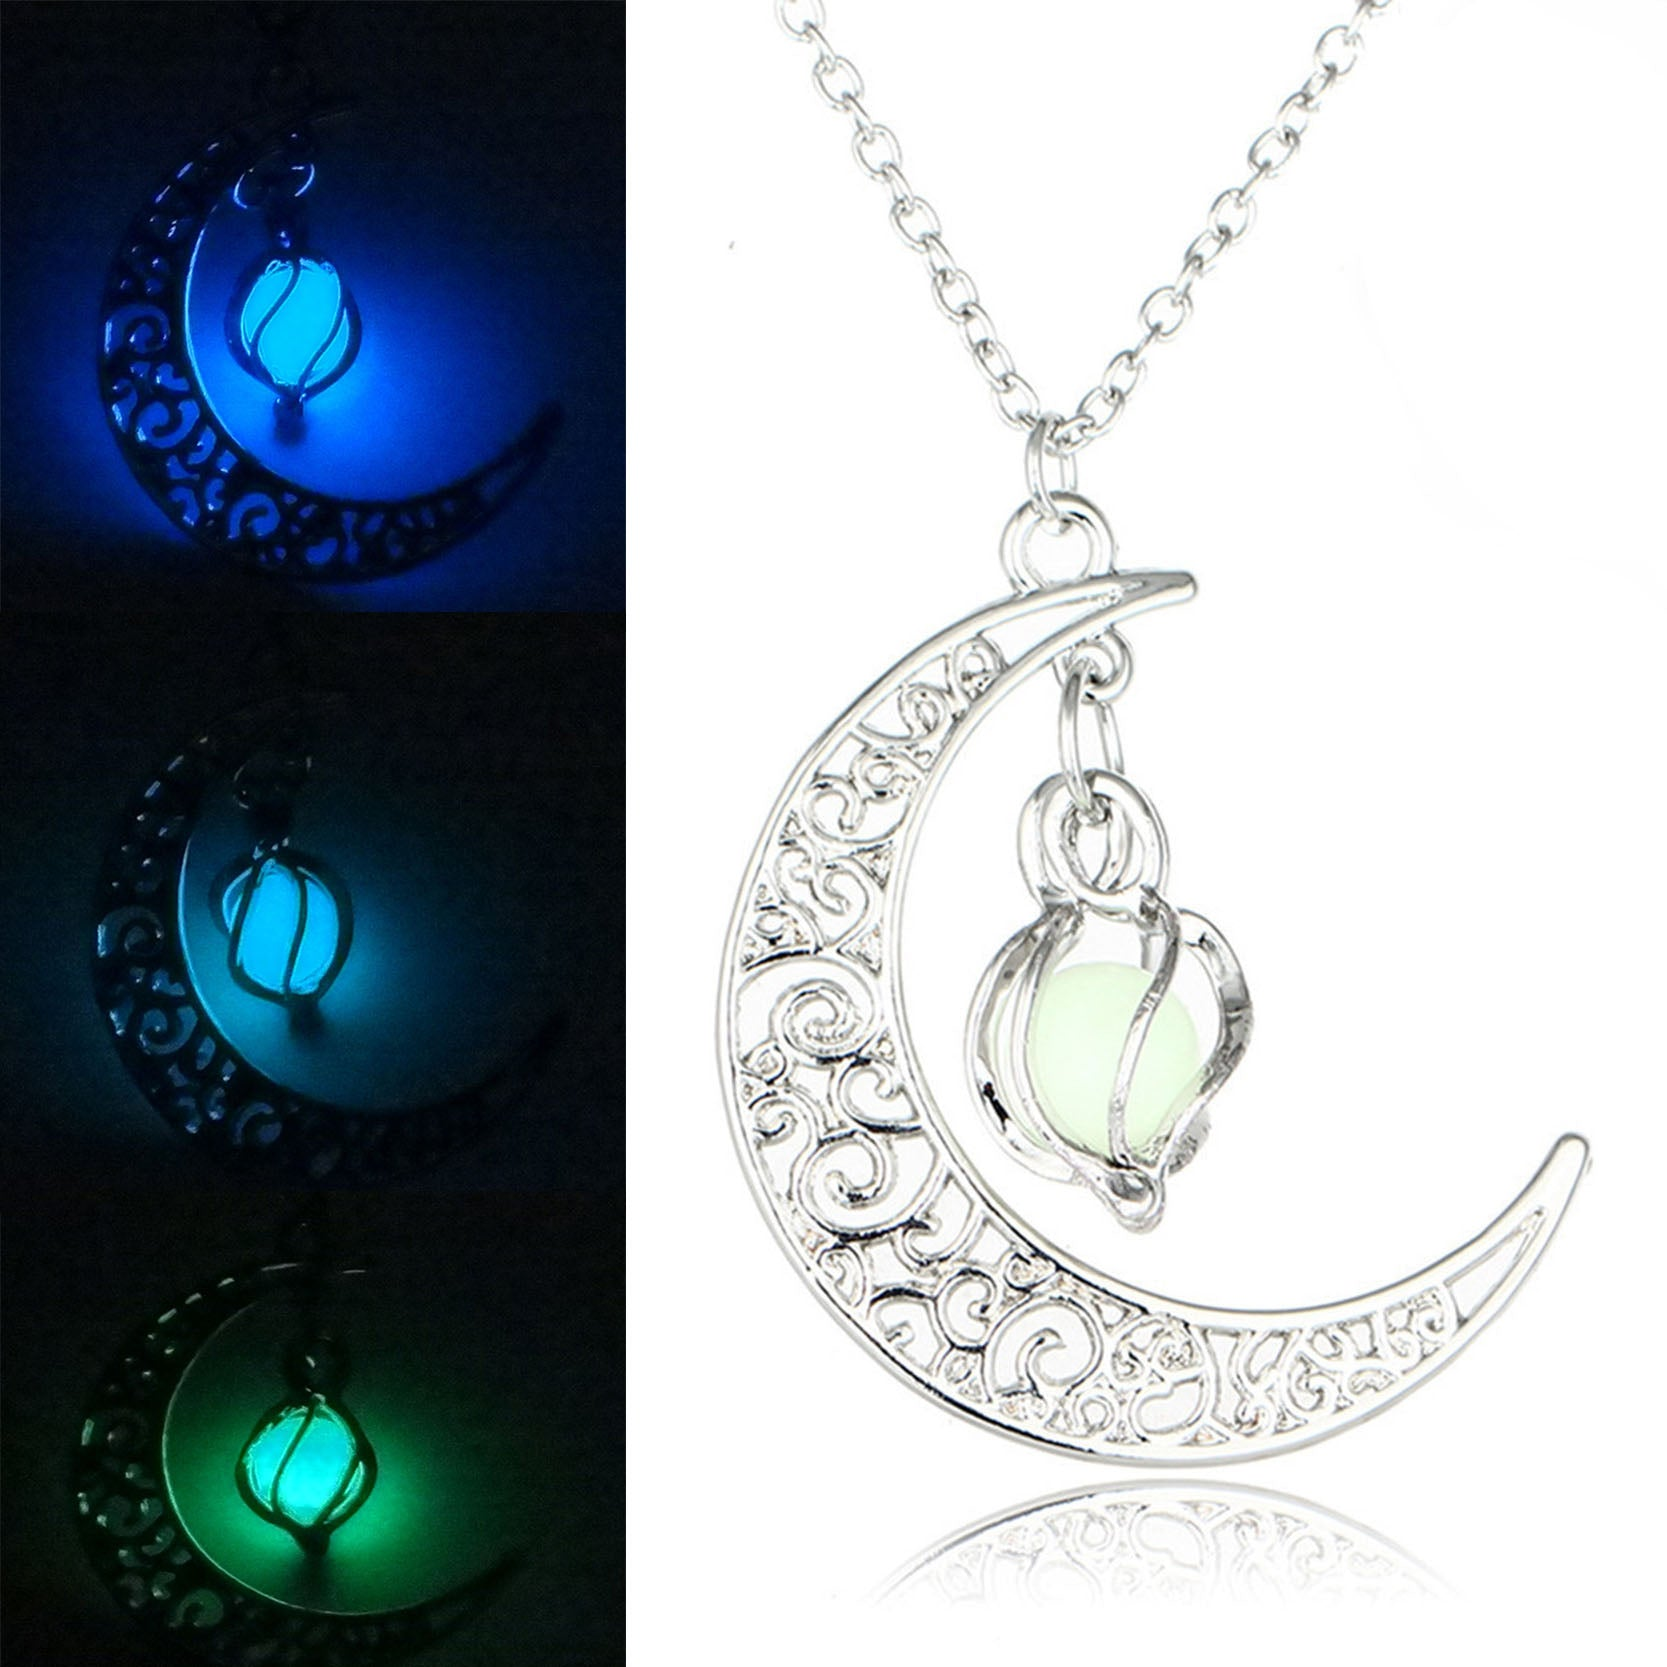 Glow In the Dark Jewelry Silver Plated with Crescent Shaped Loket Pendant